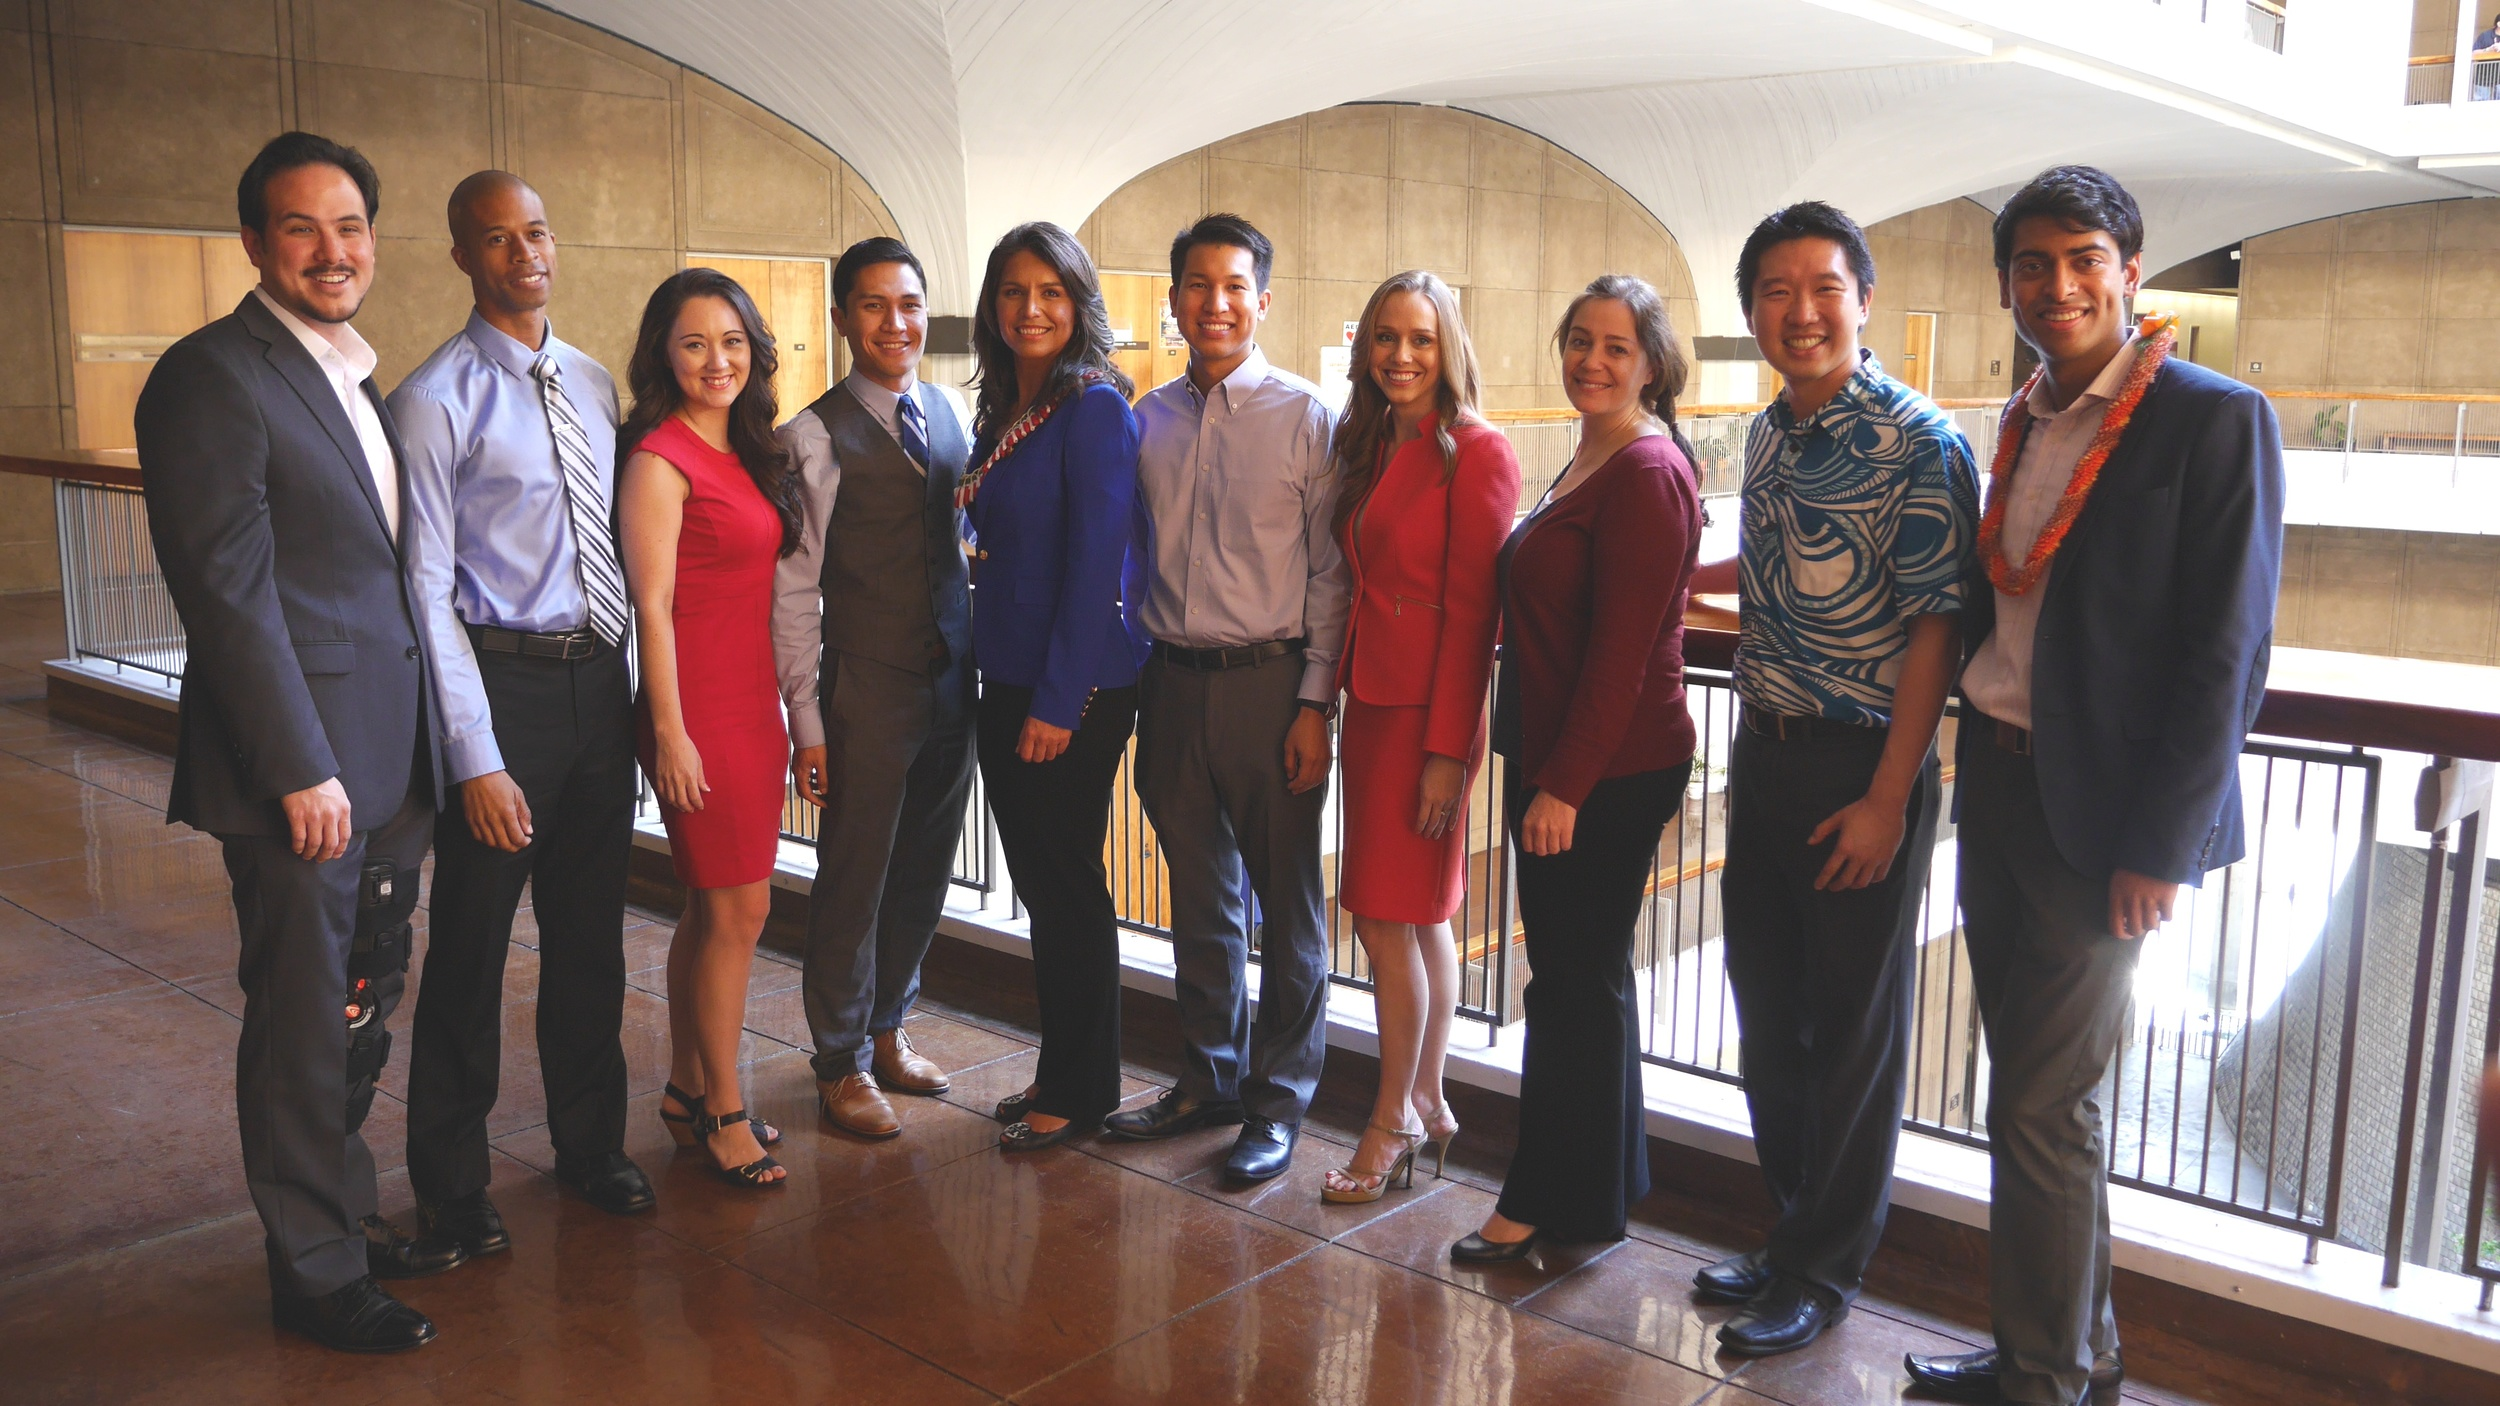 MAP President Steven Olikara, far right, at the launch of the Hawaii Future Caucus this past February with Fukumoto, third from the left.